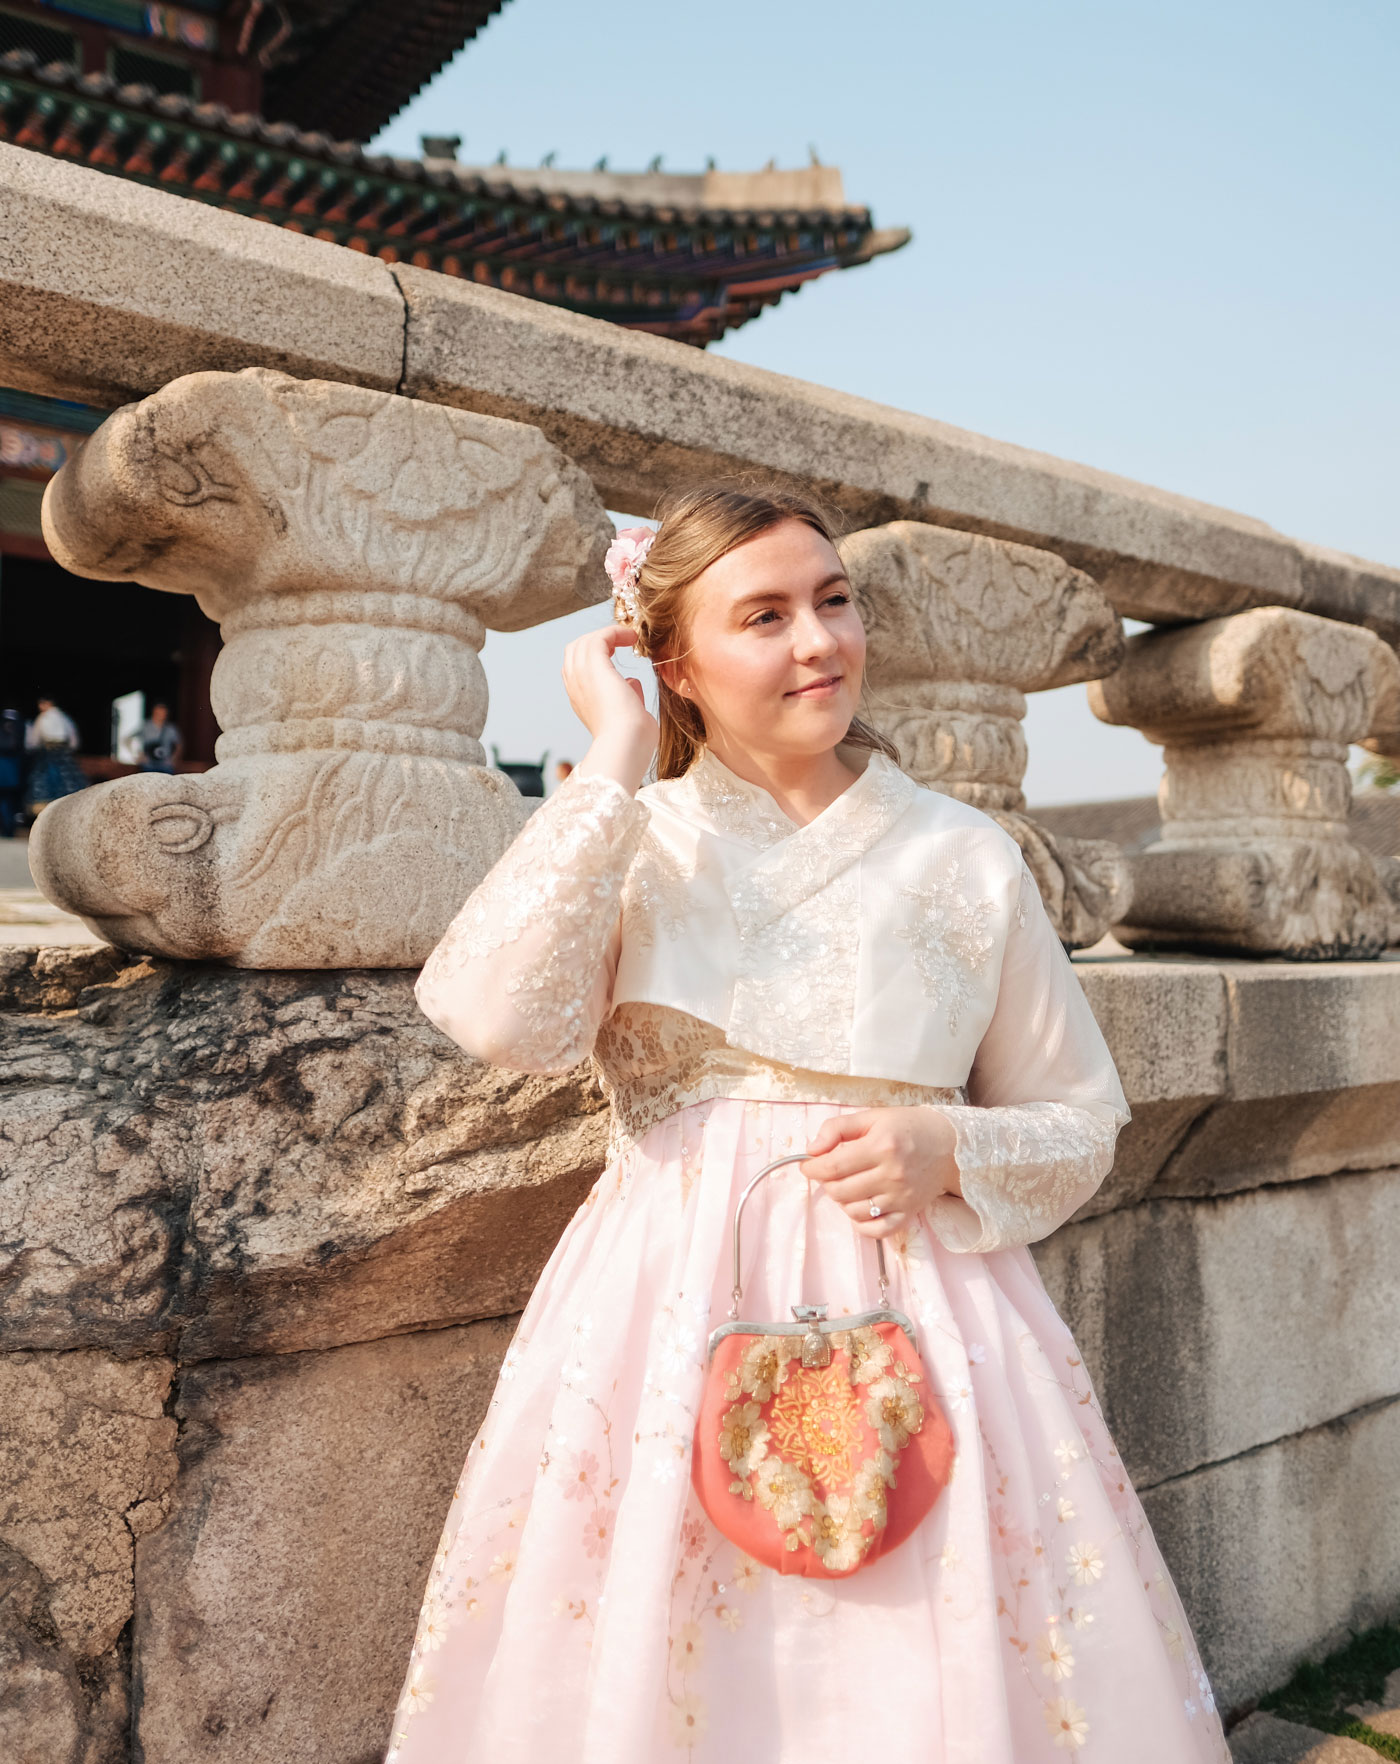 Dressed in Hanbok at Gyeongbokgung Palace in Seoul